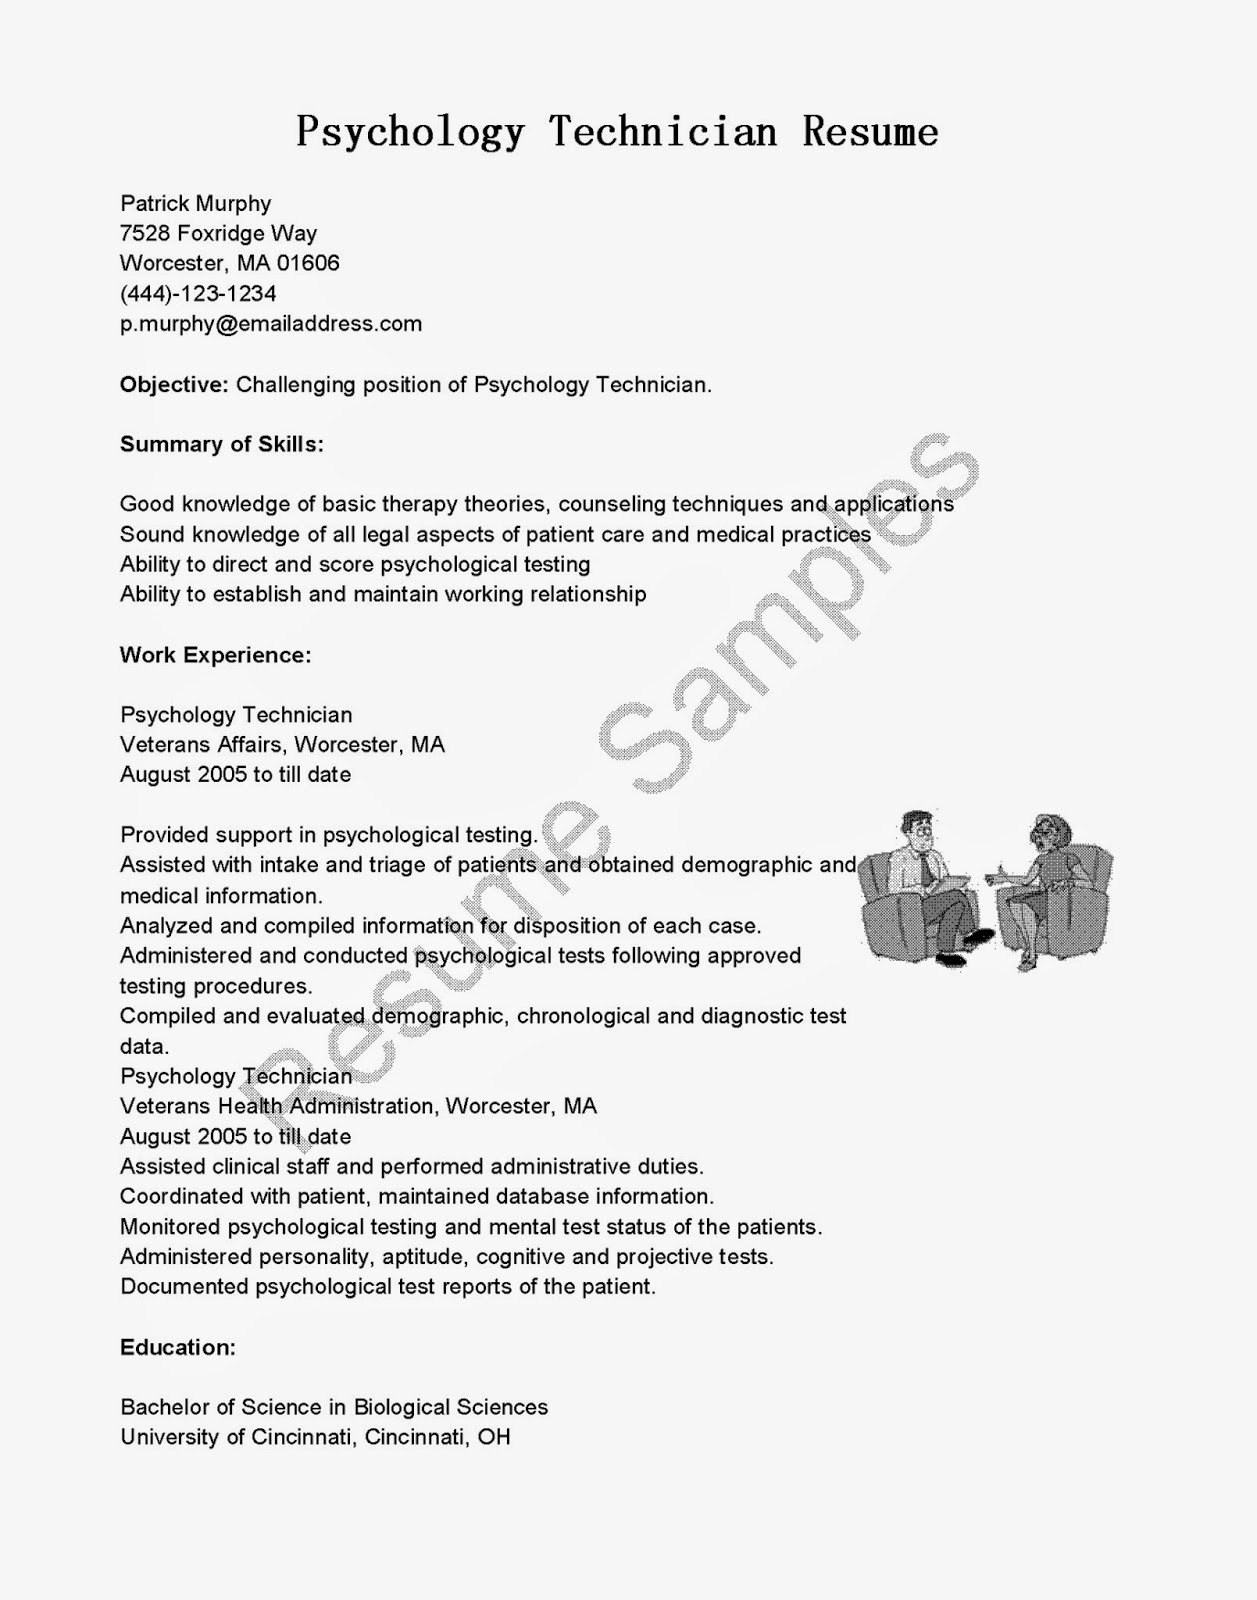 resume samples psychology technician resume sample